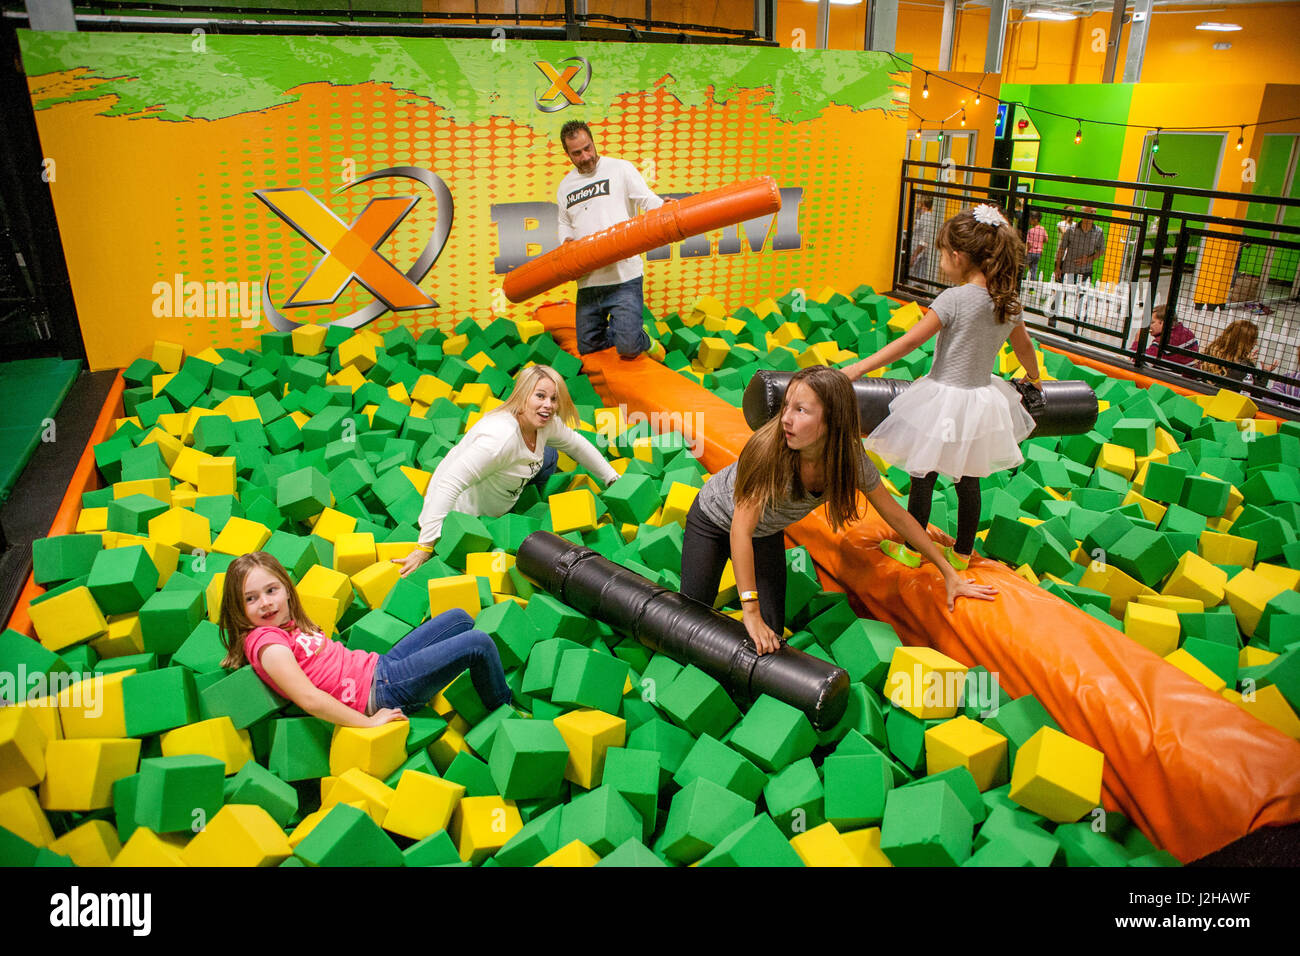 Children square off on the X-Beam balance attraction amid piles of foam rubber blocks at a Costa Mesa, CA, trampoline - Stock Image